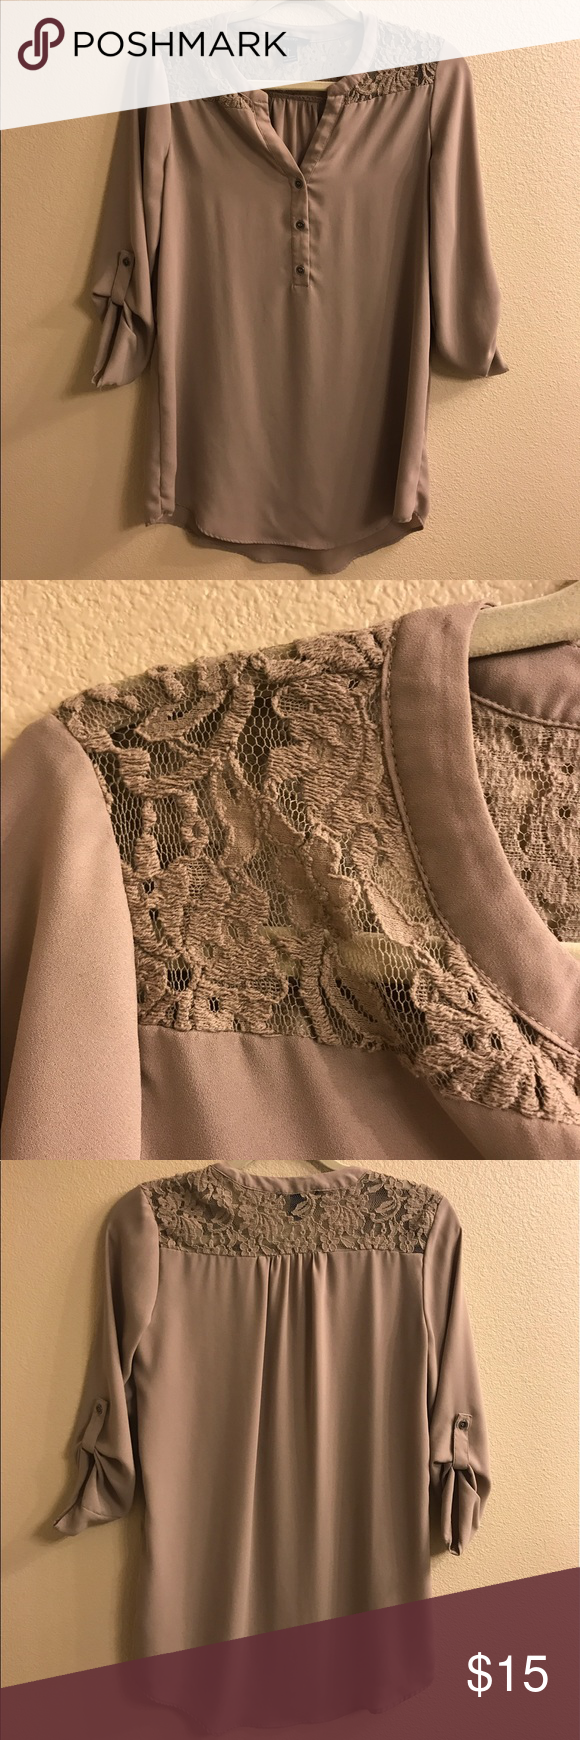 Taupe tunic style blouse Brand new without tags. Size small. Can fit a medium. Tunic style and length. Forever 21 Tops Blouses